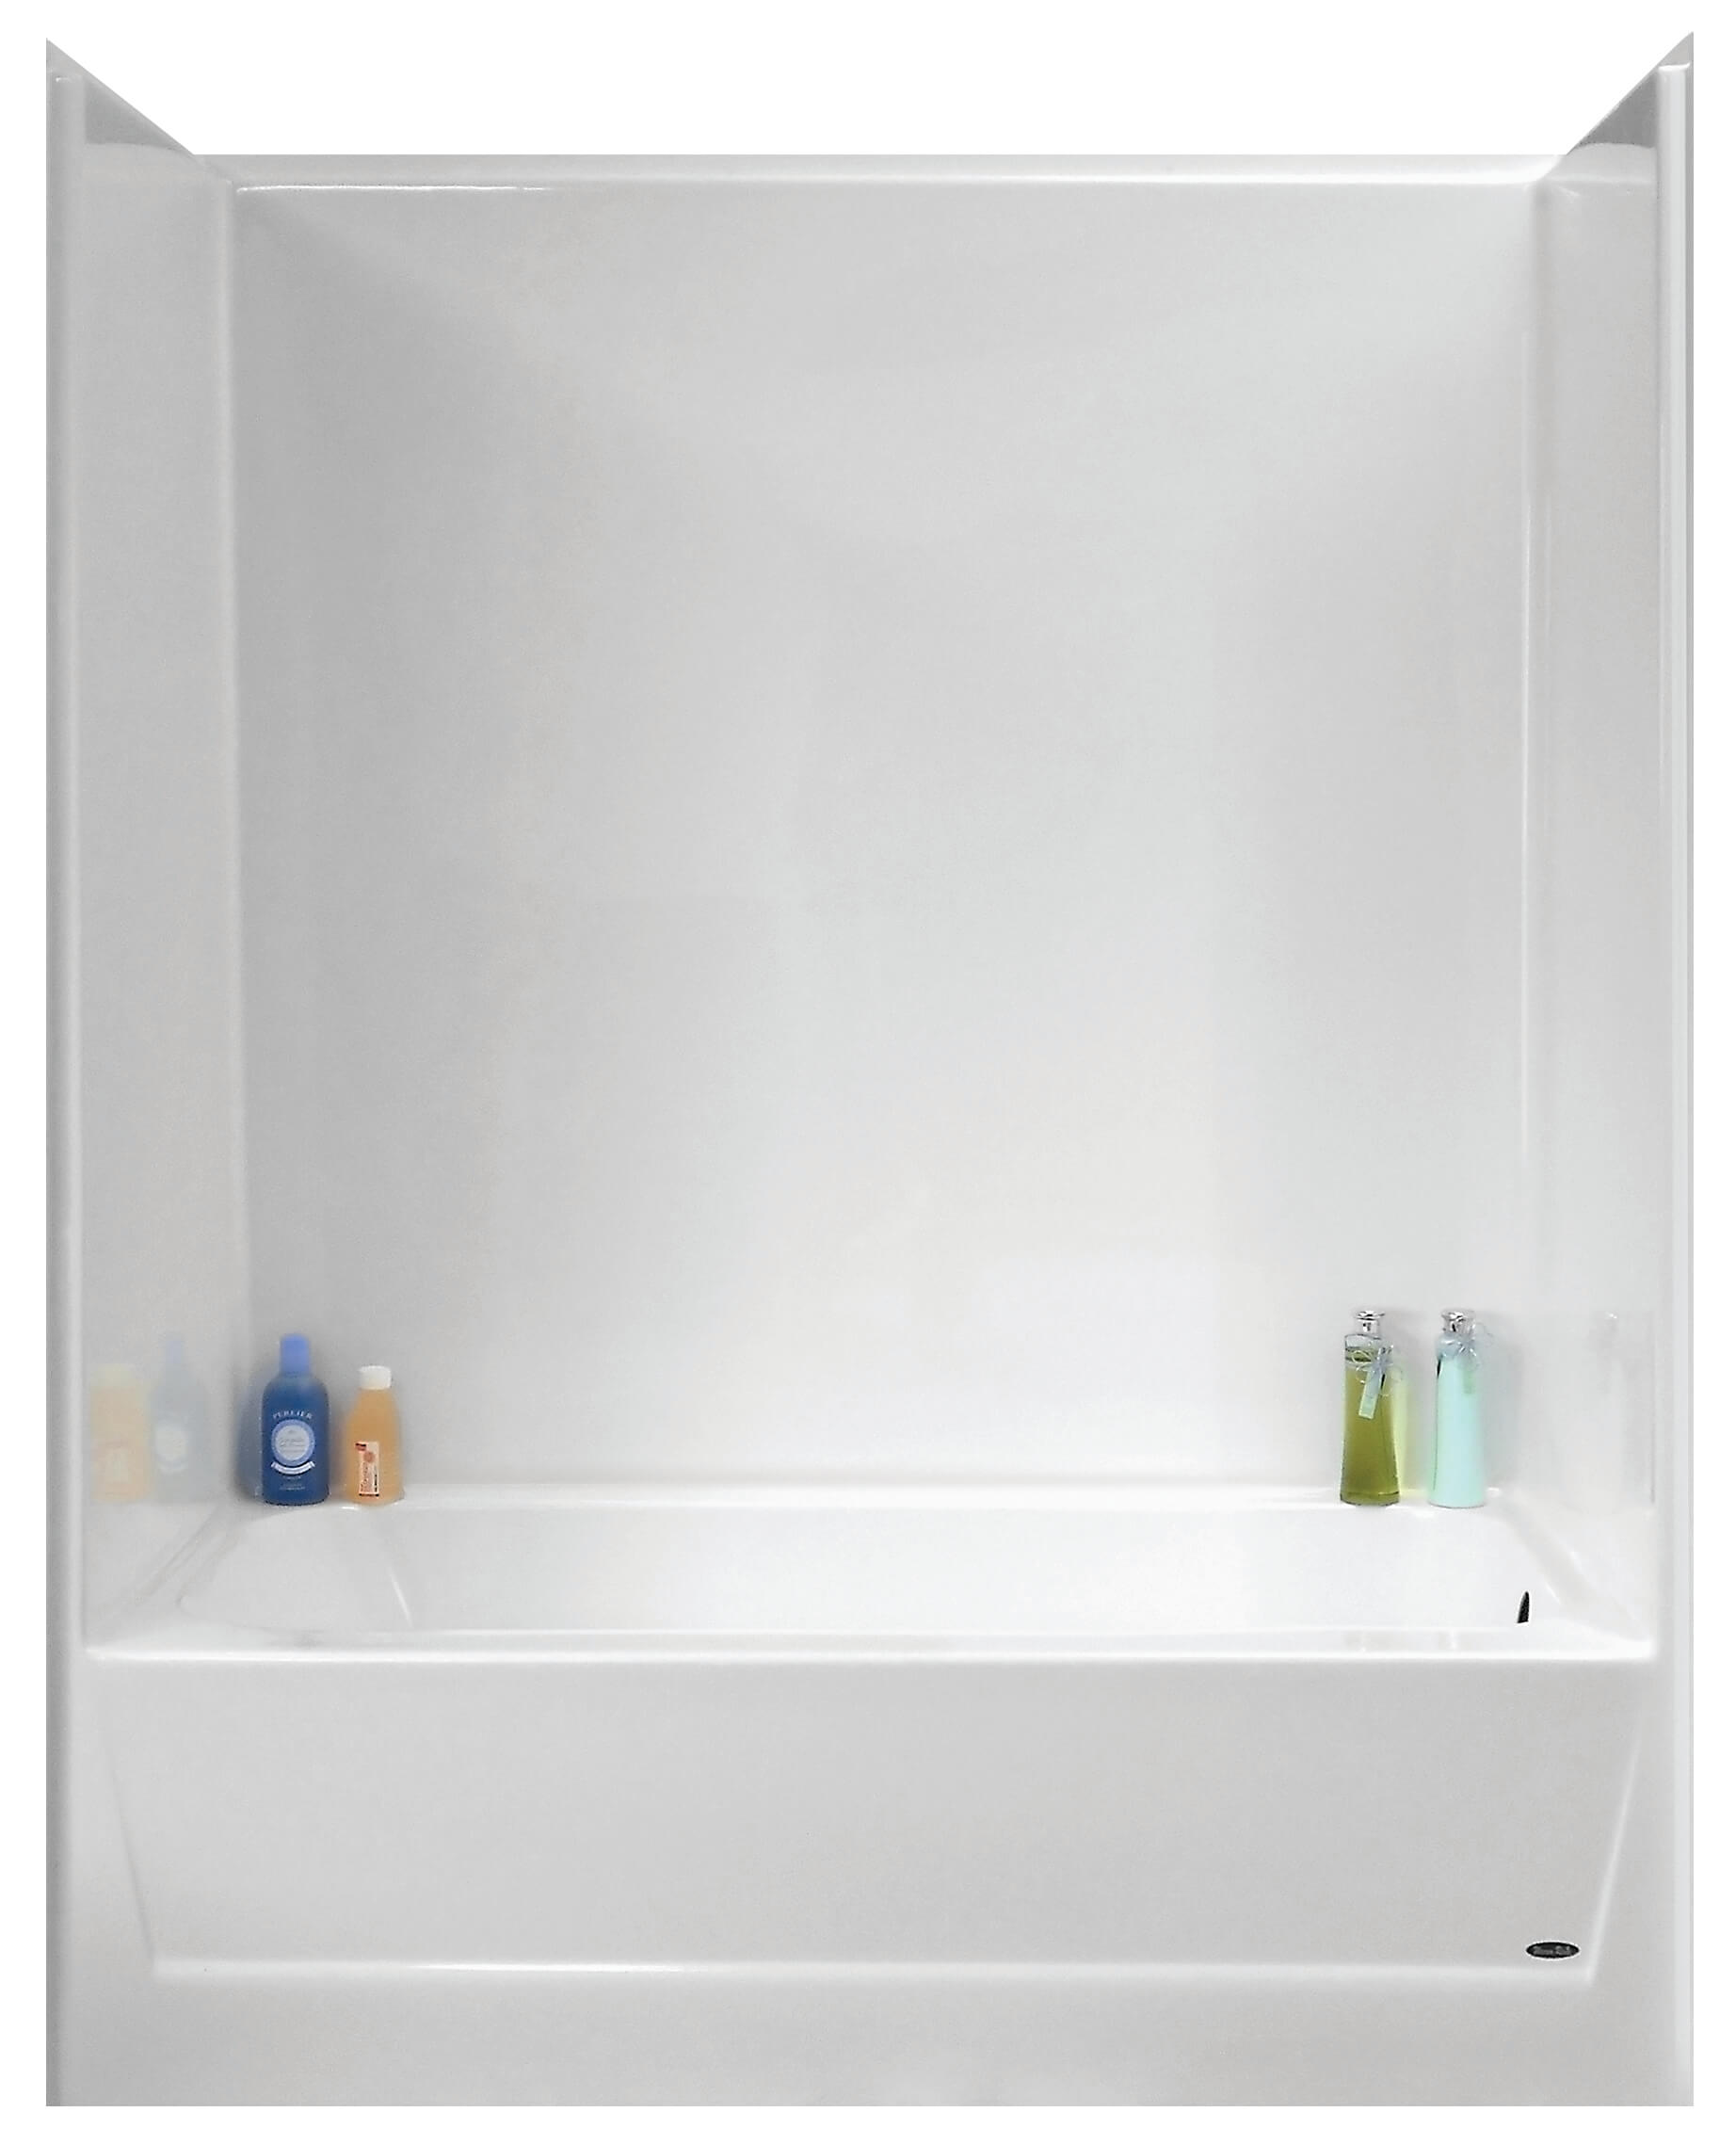 accessible baths and way trend walk secure bathtub combo gorgeous a step pic units safe unbelievable shower awesome tub by style more for american standard concept in